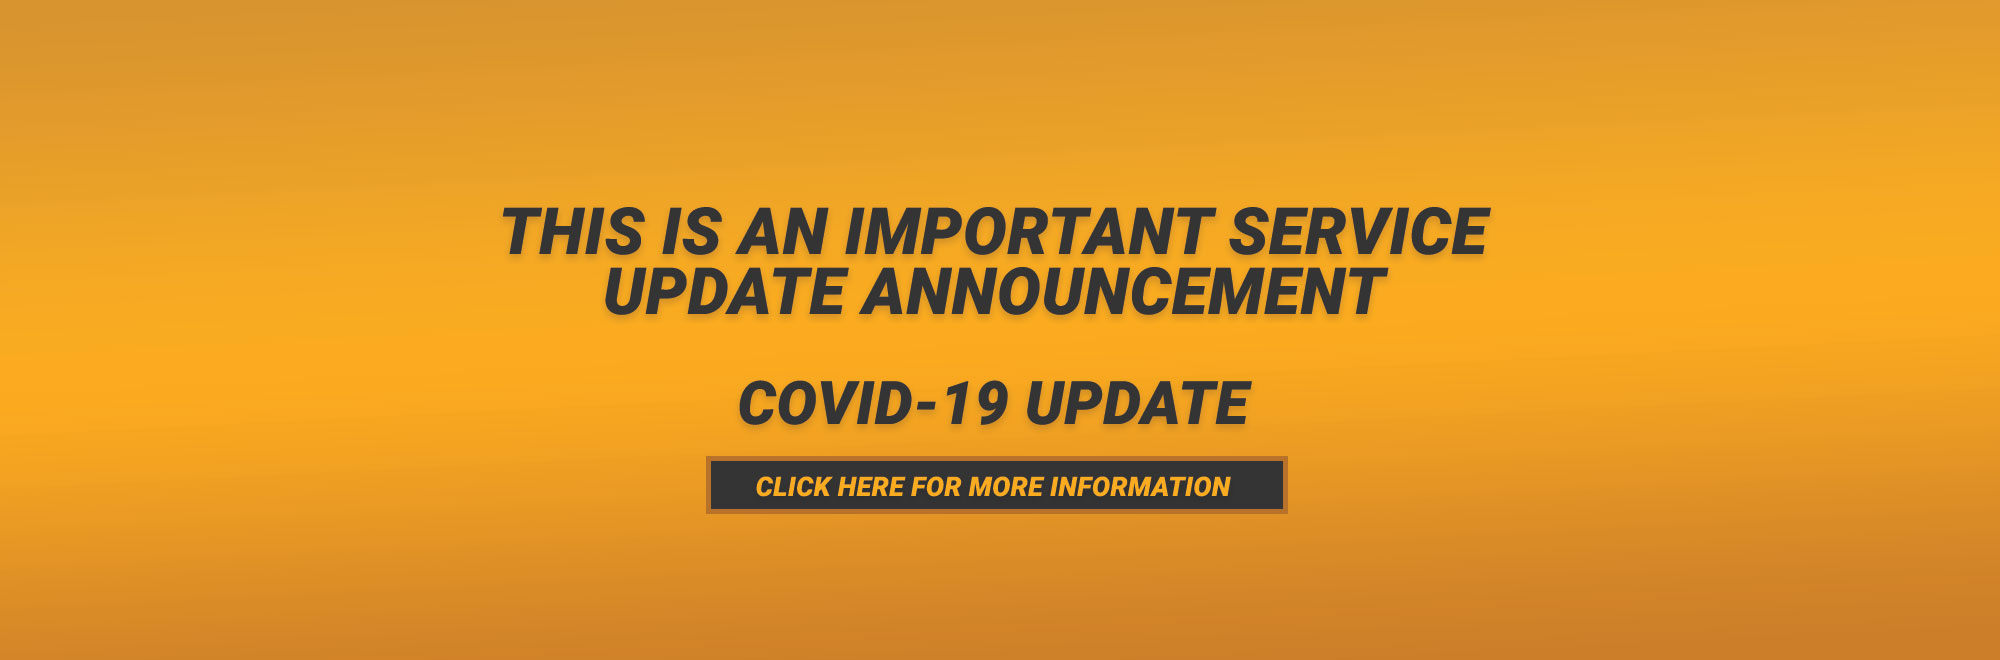 This is an important service update and COVID-19 announcement. Find more information.